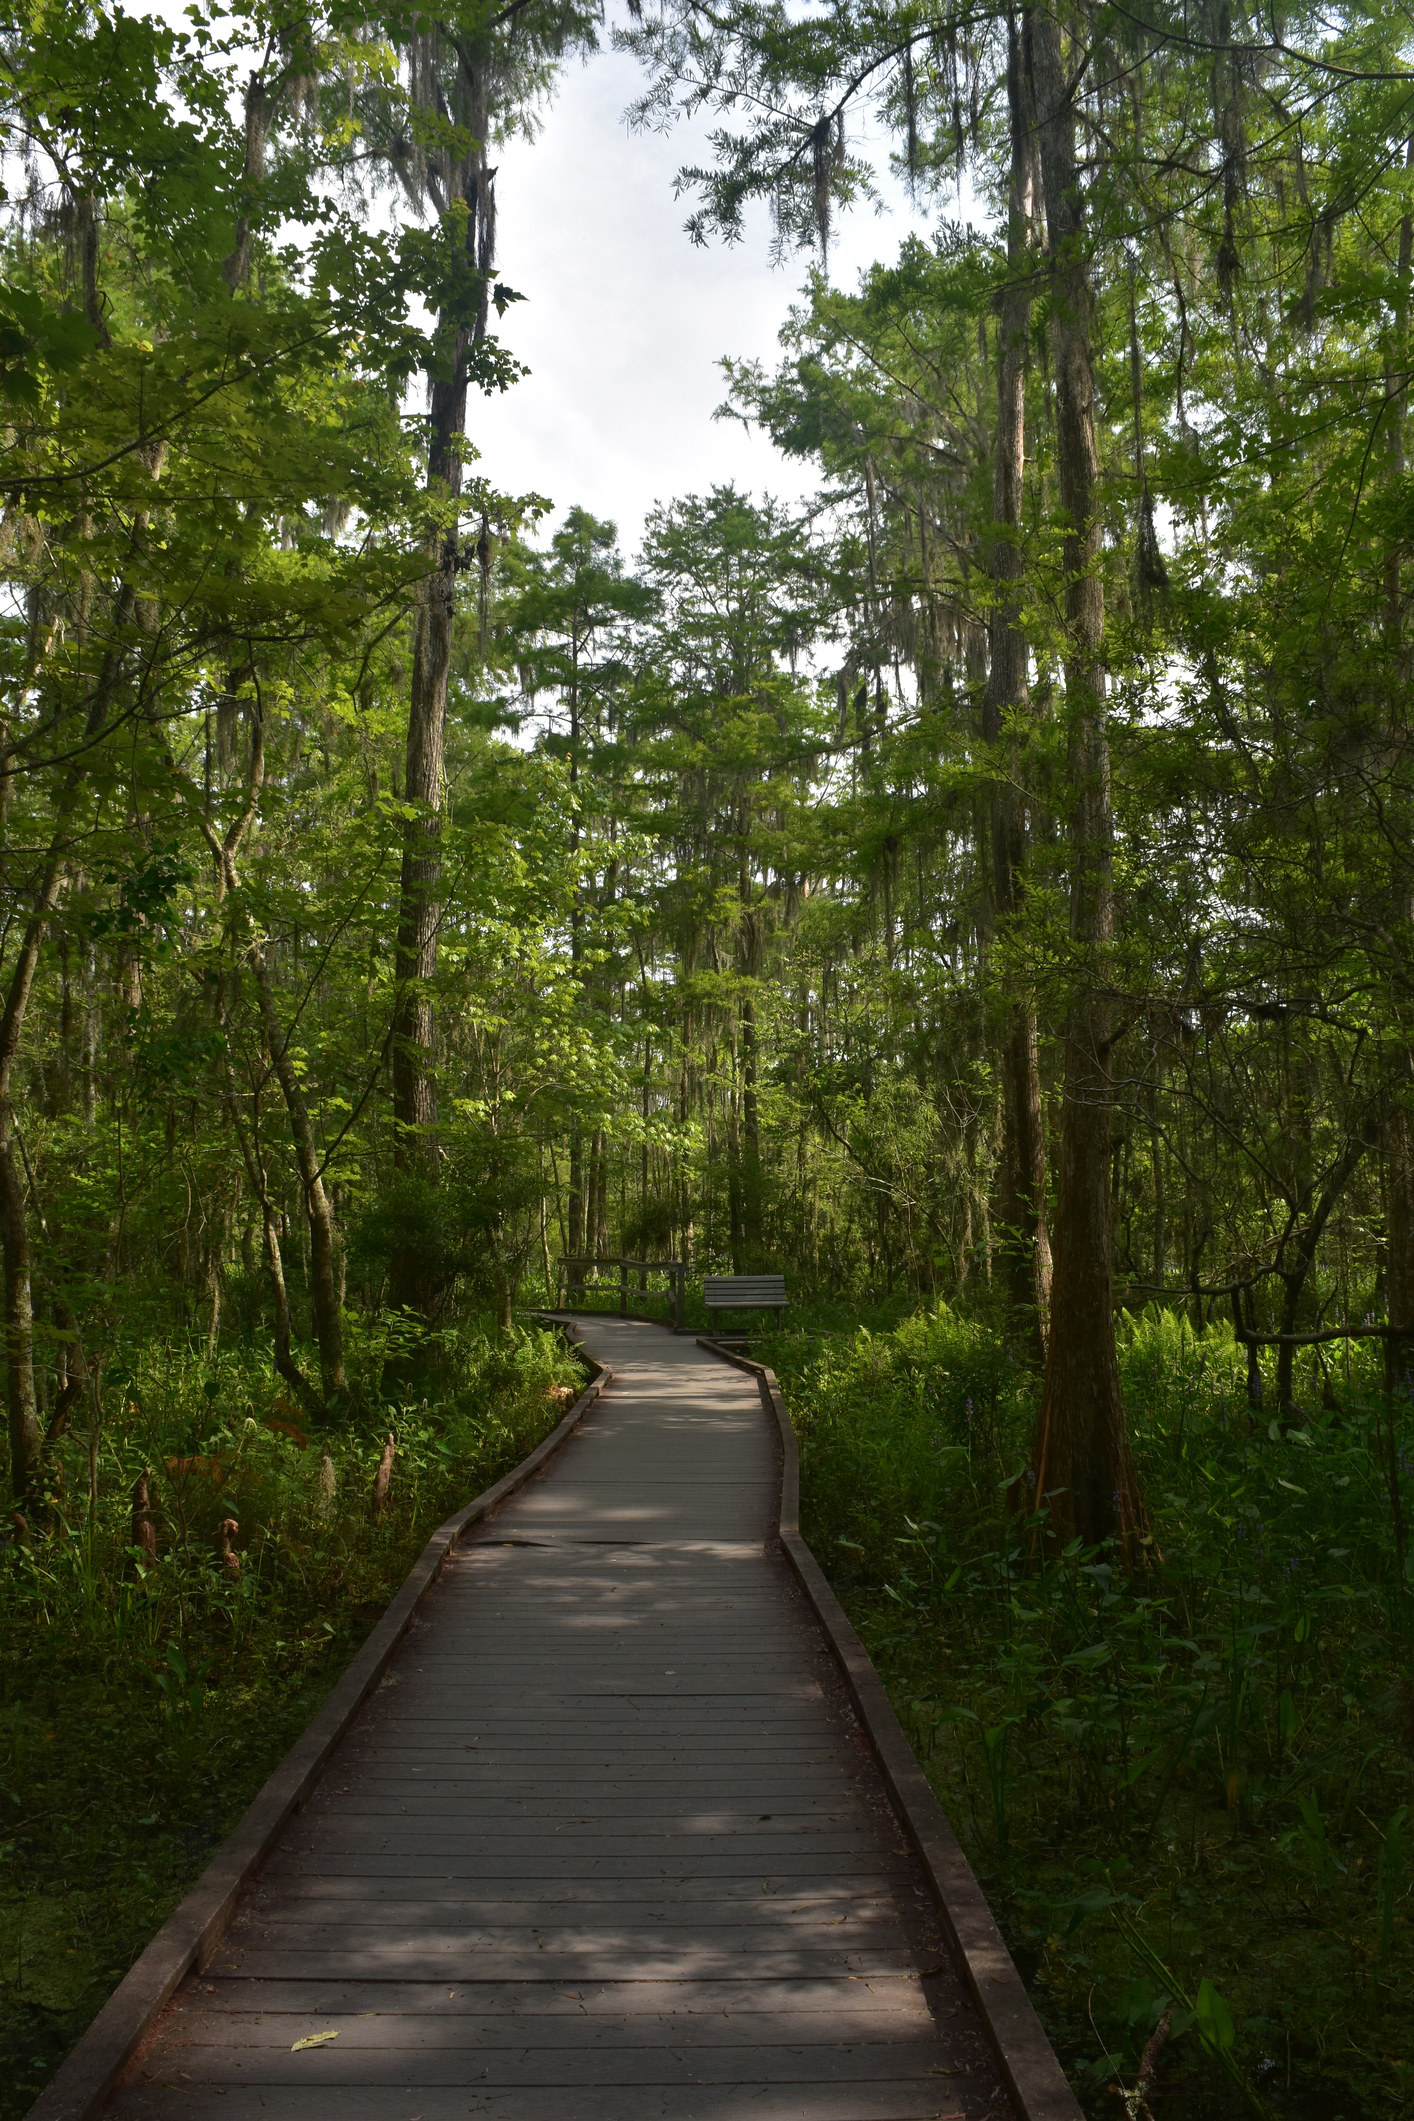 Beautiful wooden path through Barataria Preserve in the swamp.